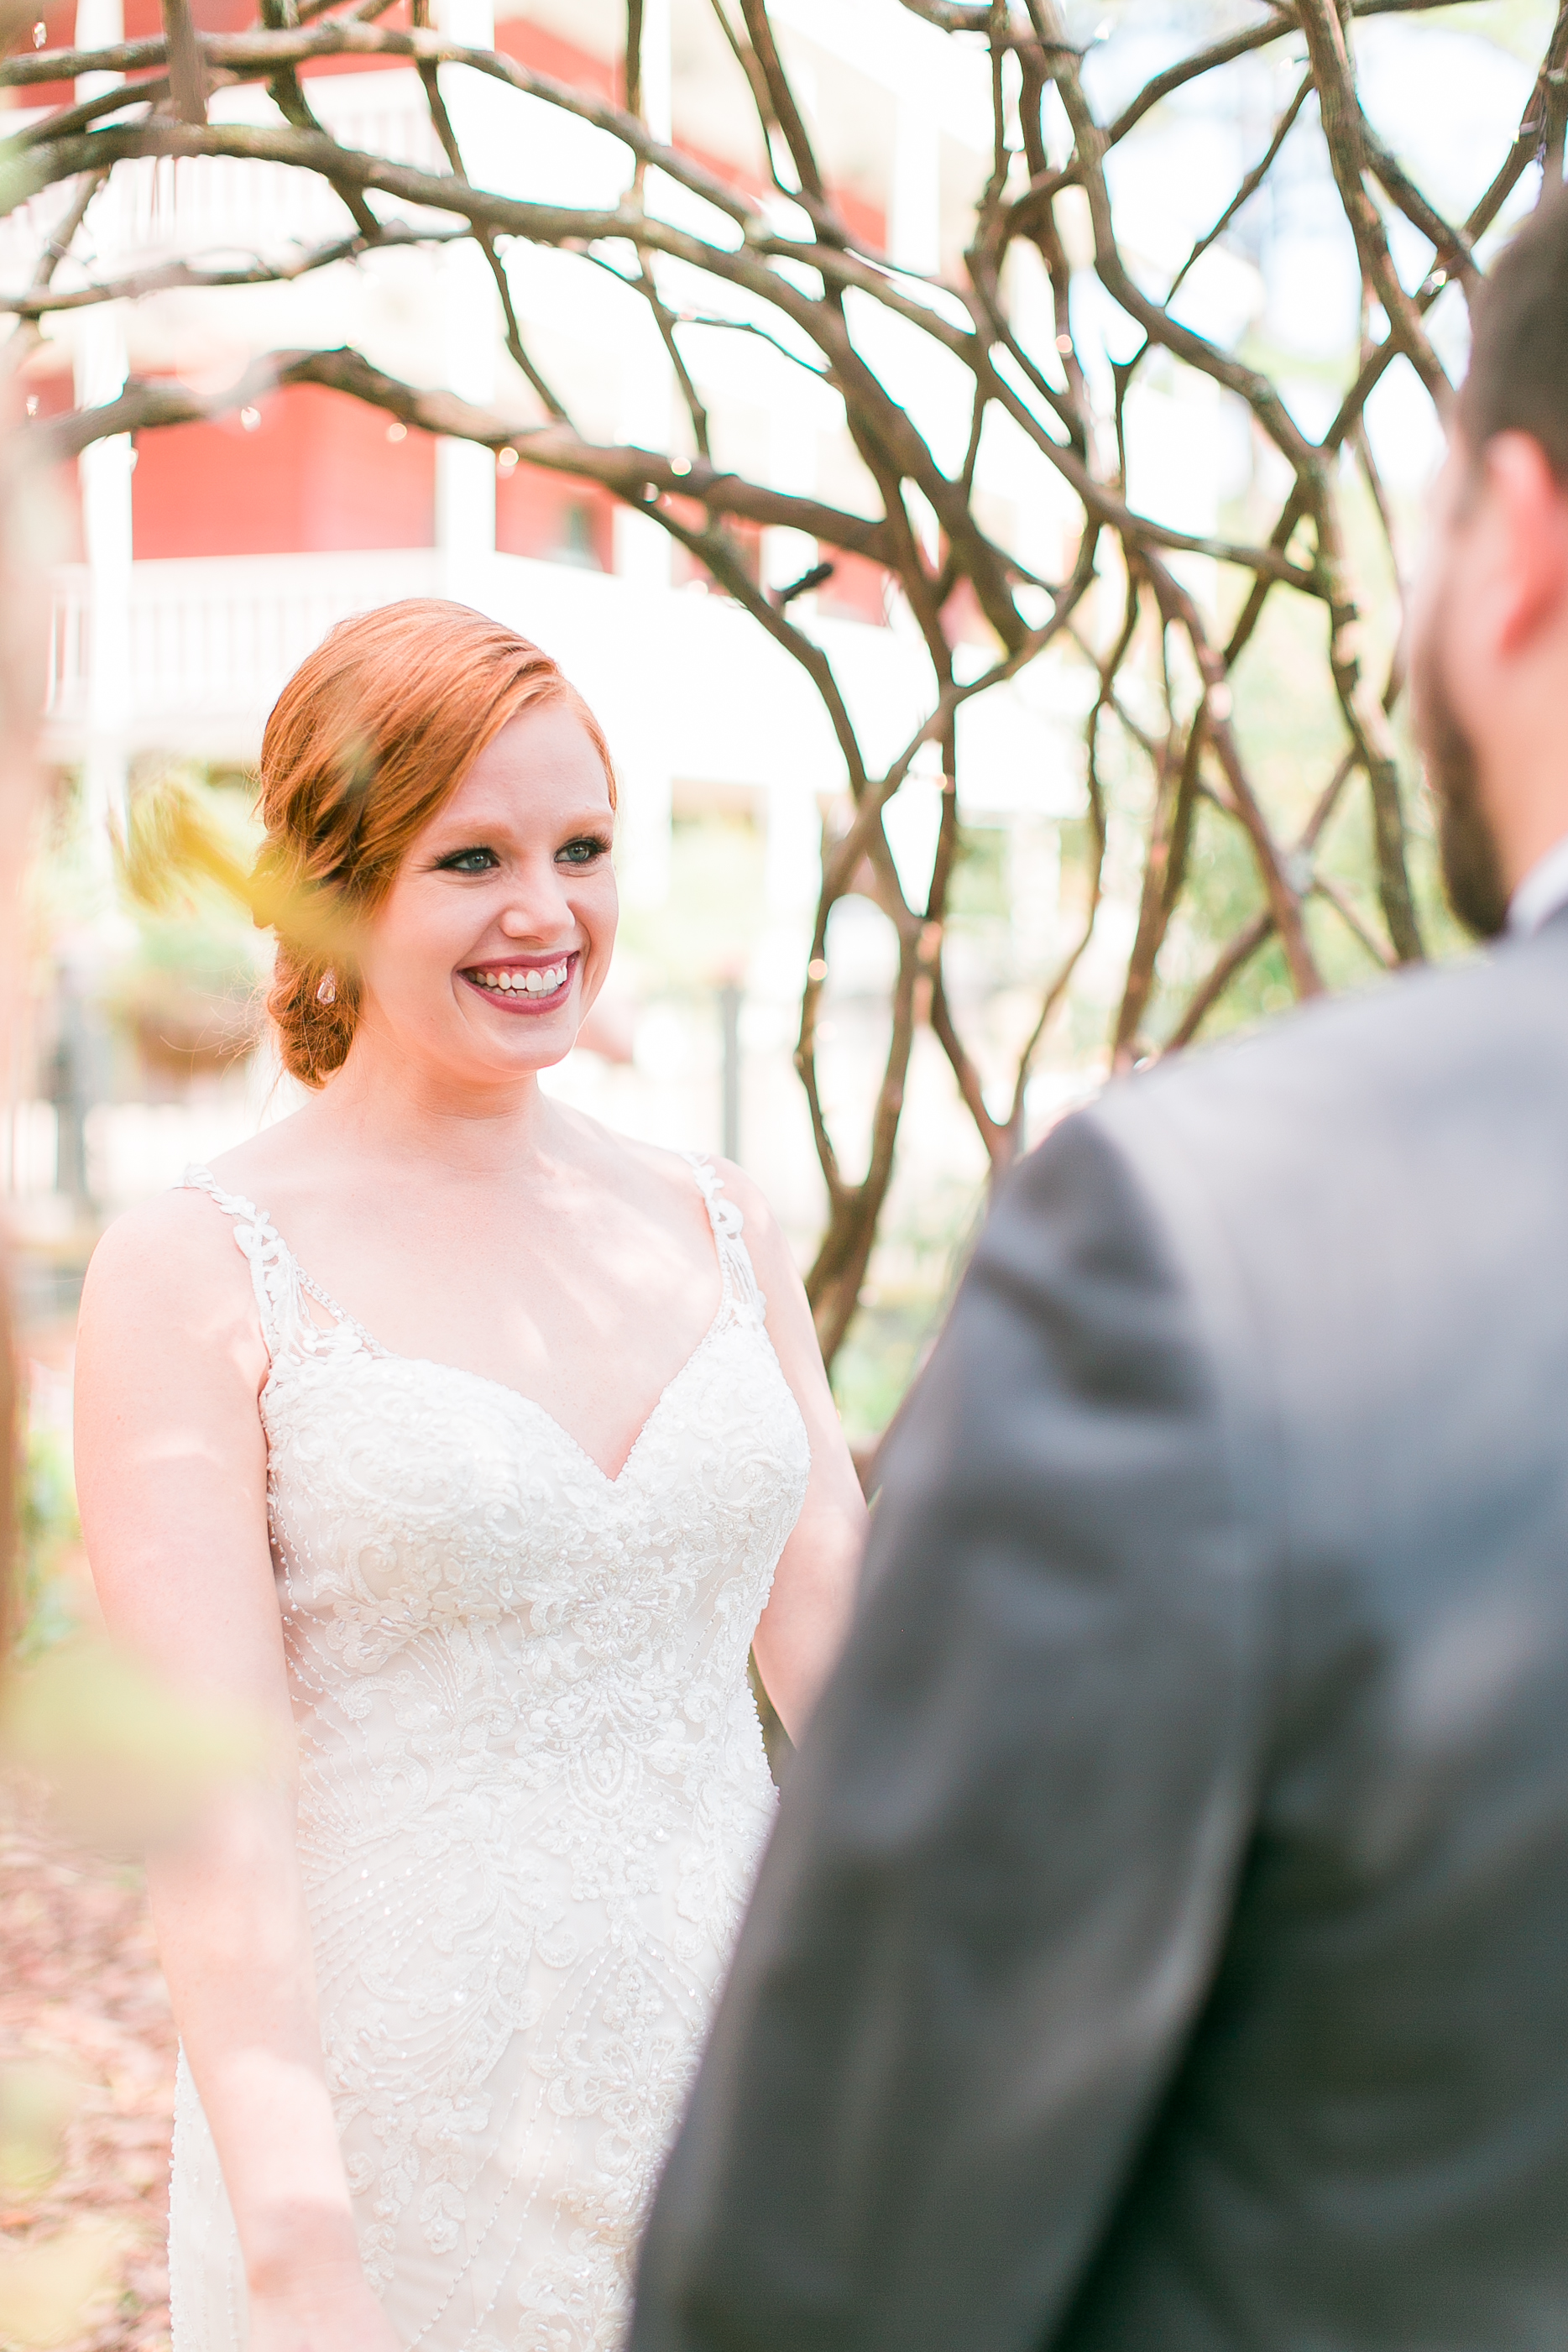 brockwedding_sneakpeek4.jpg